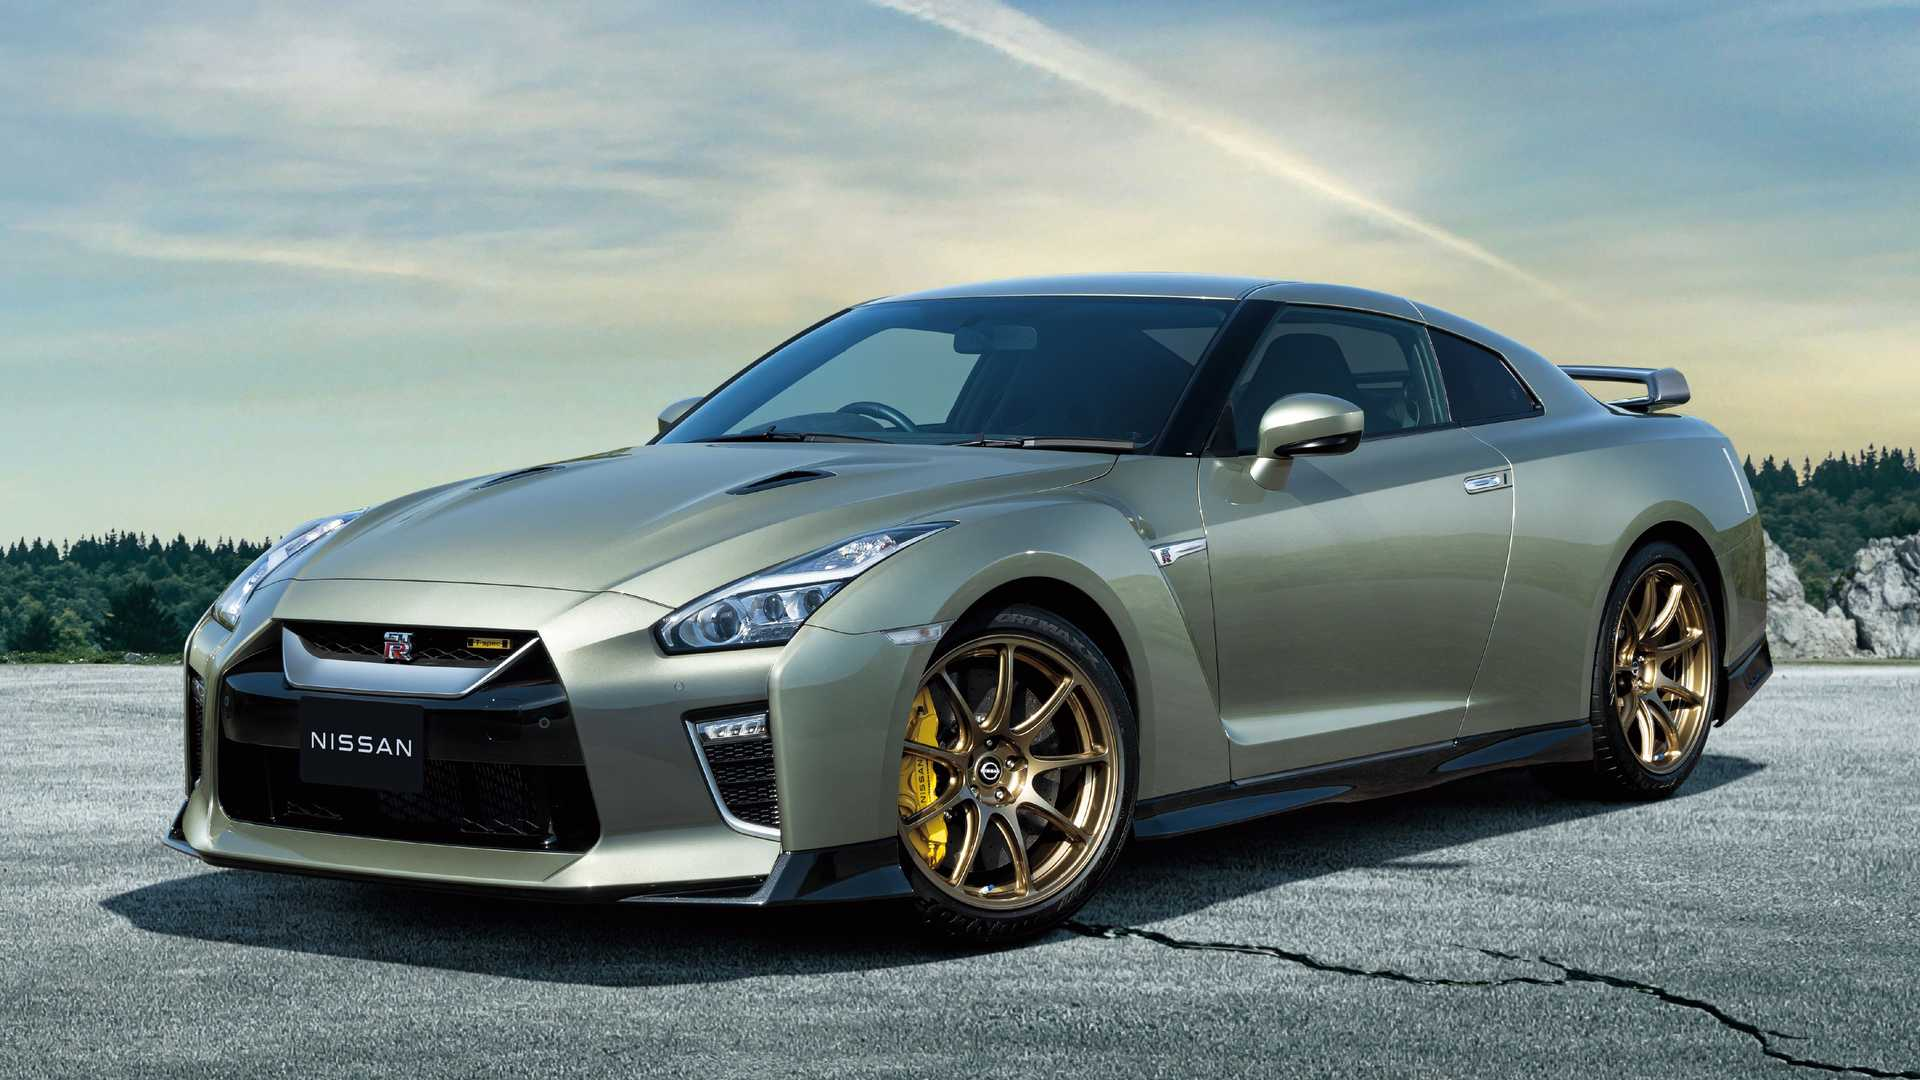 A More Handsome Godzilla: The 2021 Nissan GT-R T-spec Is One Of The Final Special Editions Of A Special Car